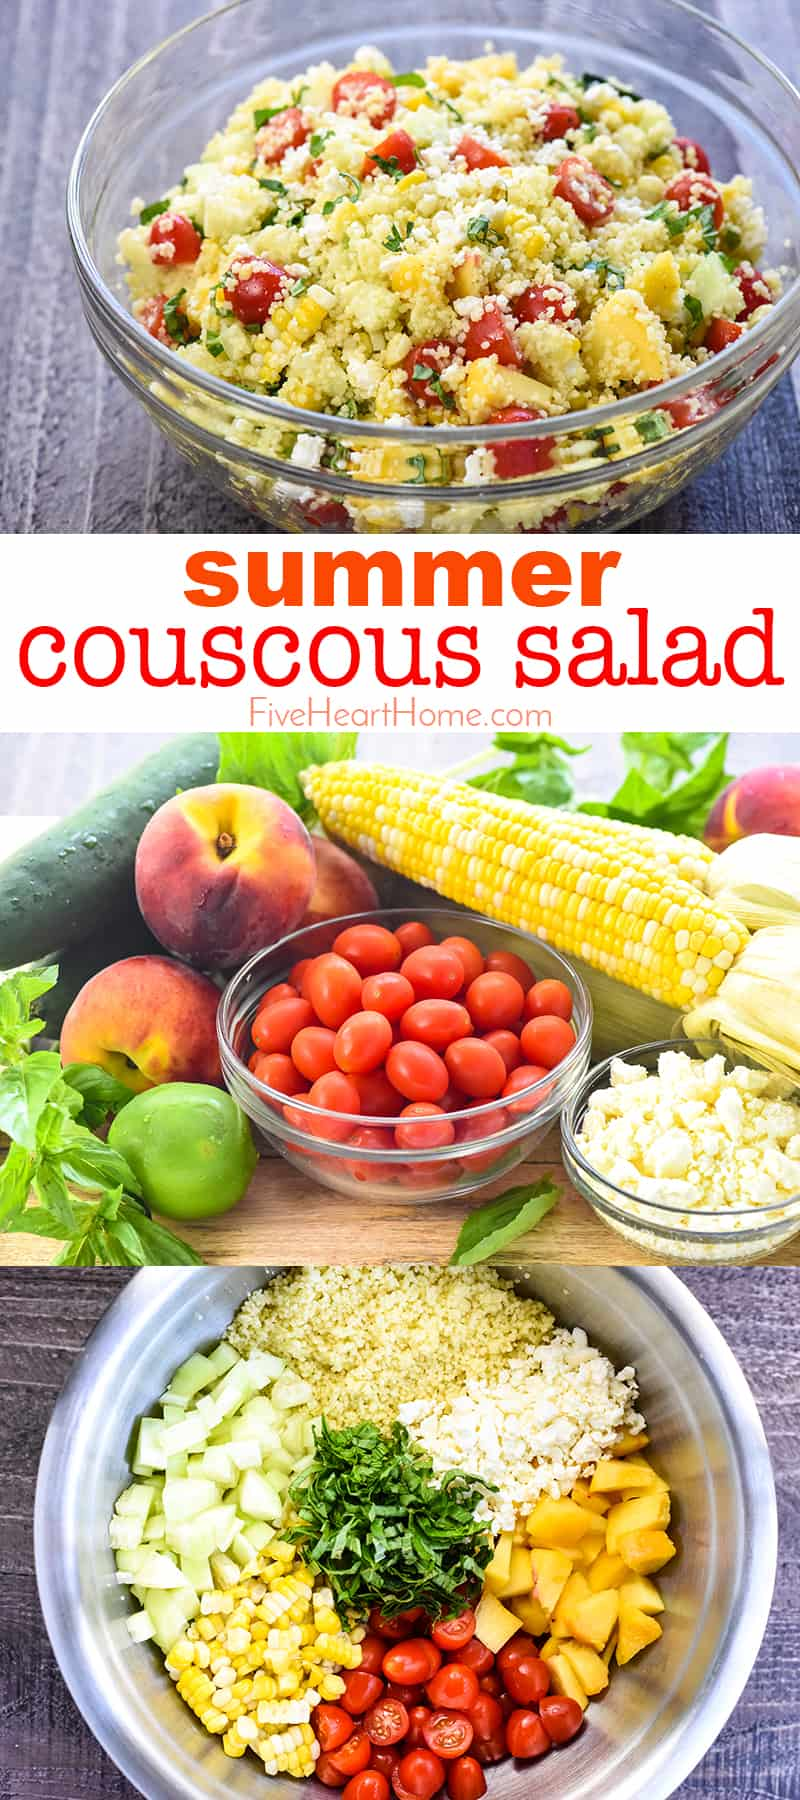 Summer Couscous Salad ~ a flavorful side dish featuring fluffy couscous studded with fresh corn, juicy tomatoes, crisp cucumbers, sweet peaches, chopped basil, and creamy feta in a honey lime dressing! | FiveHeartHome.com #couscous #couscoussalad #couscousrecipe #summersalad via @fivehearthome